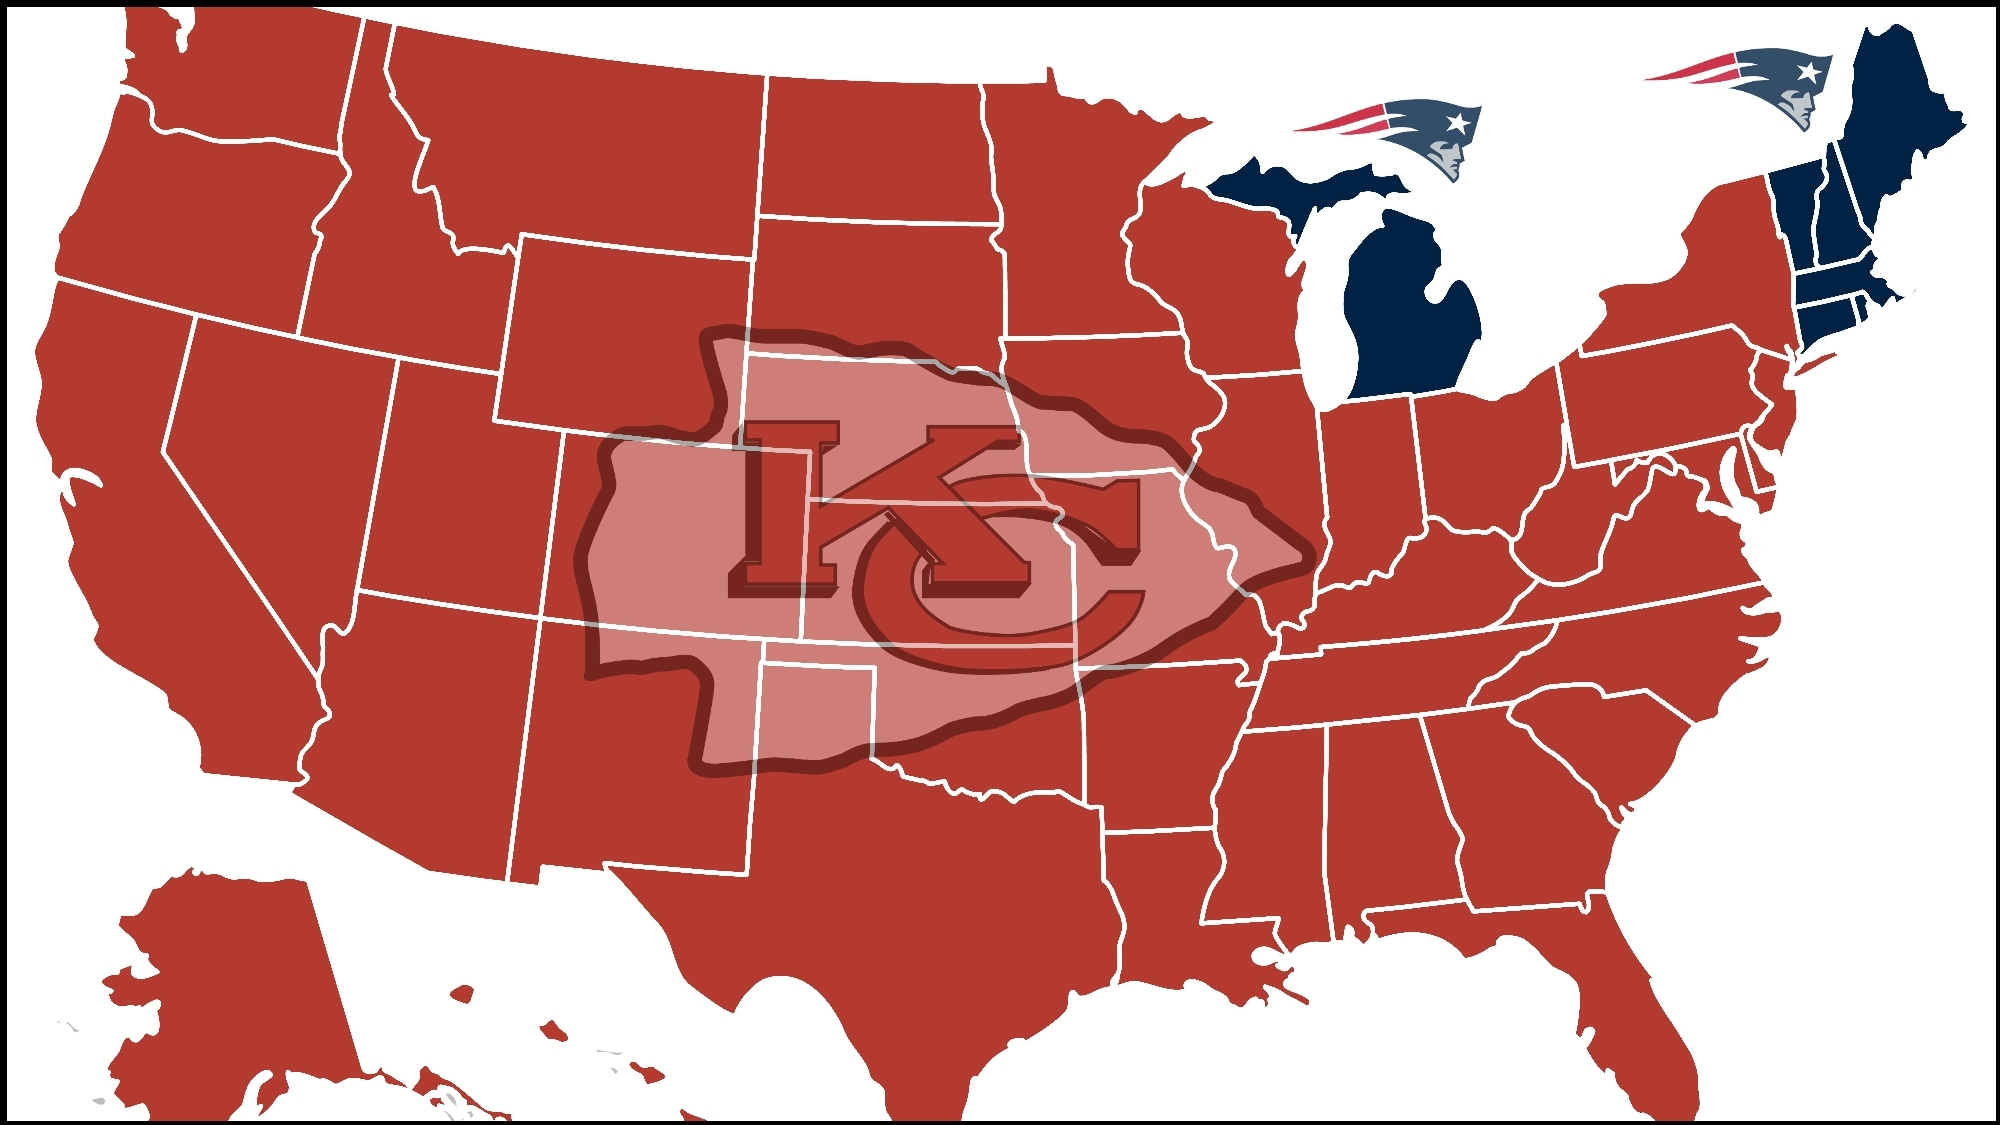 Almost Entire Country Will Be Rooting Against Patriots In inside Map Of Super Bowl Rooting